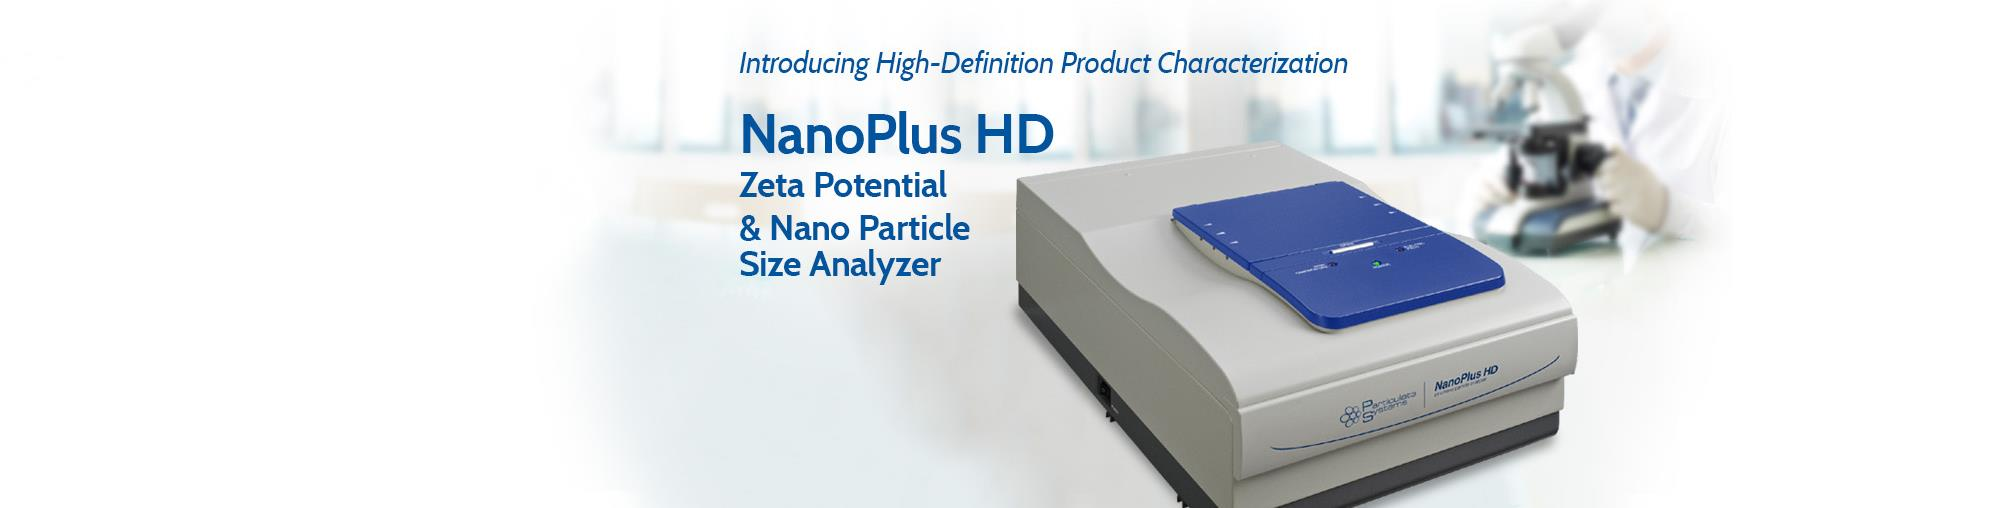 04web-header_nanoplus-hd_2015.jpg